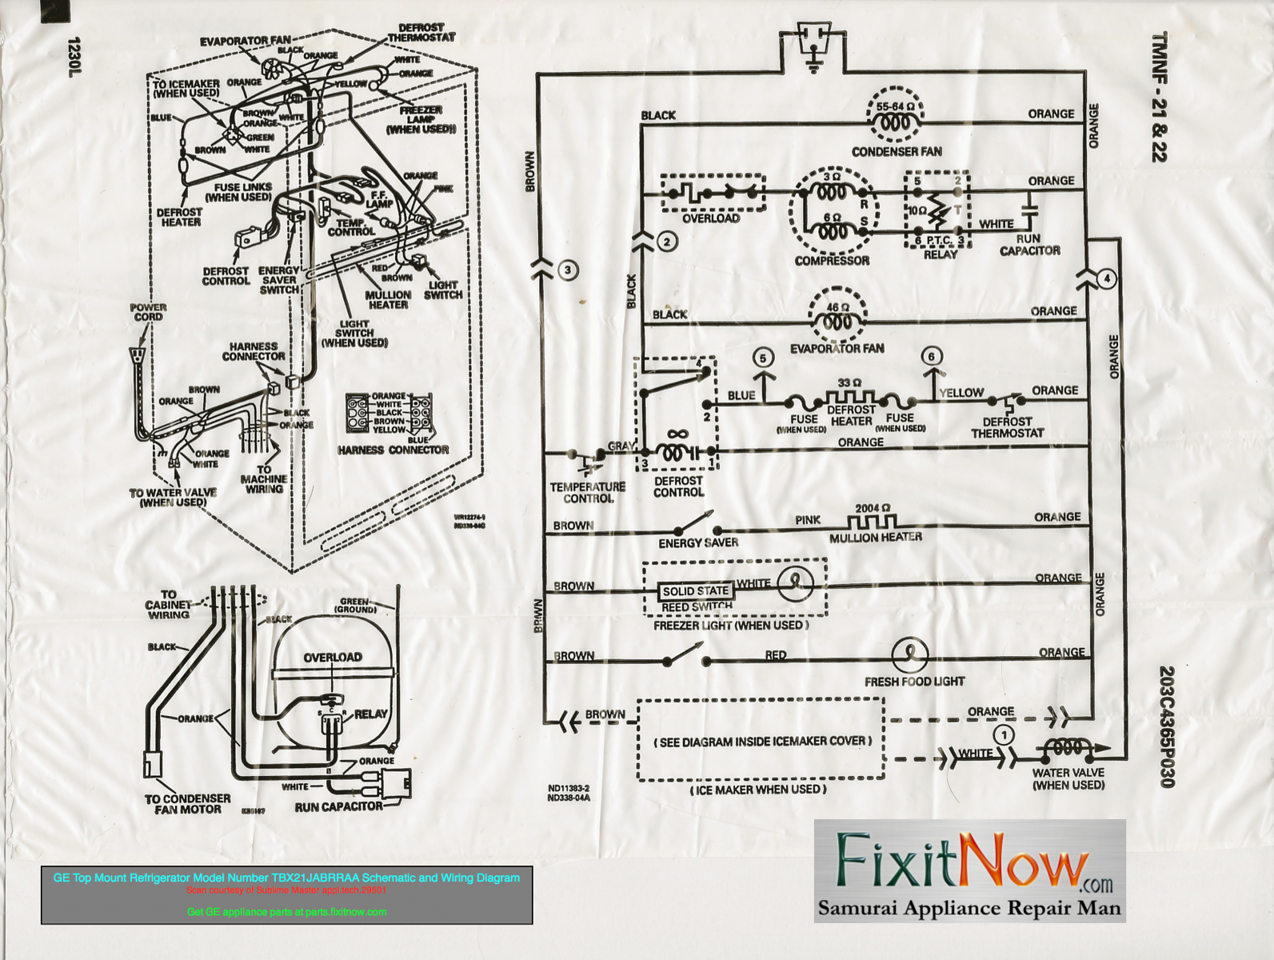 Wiring Diagrams Ge Refrig - Wiring Diagrams Hidden on